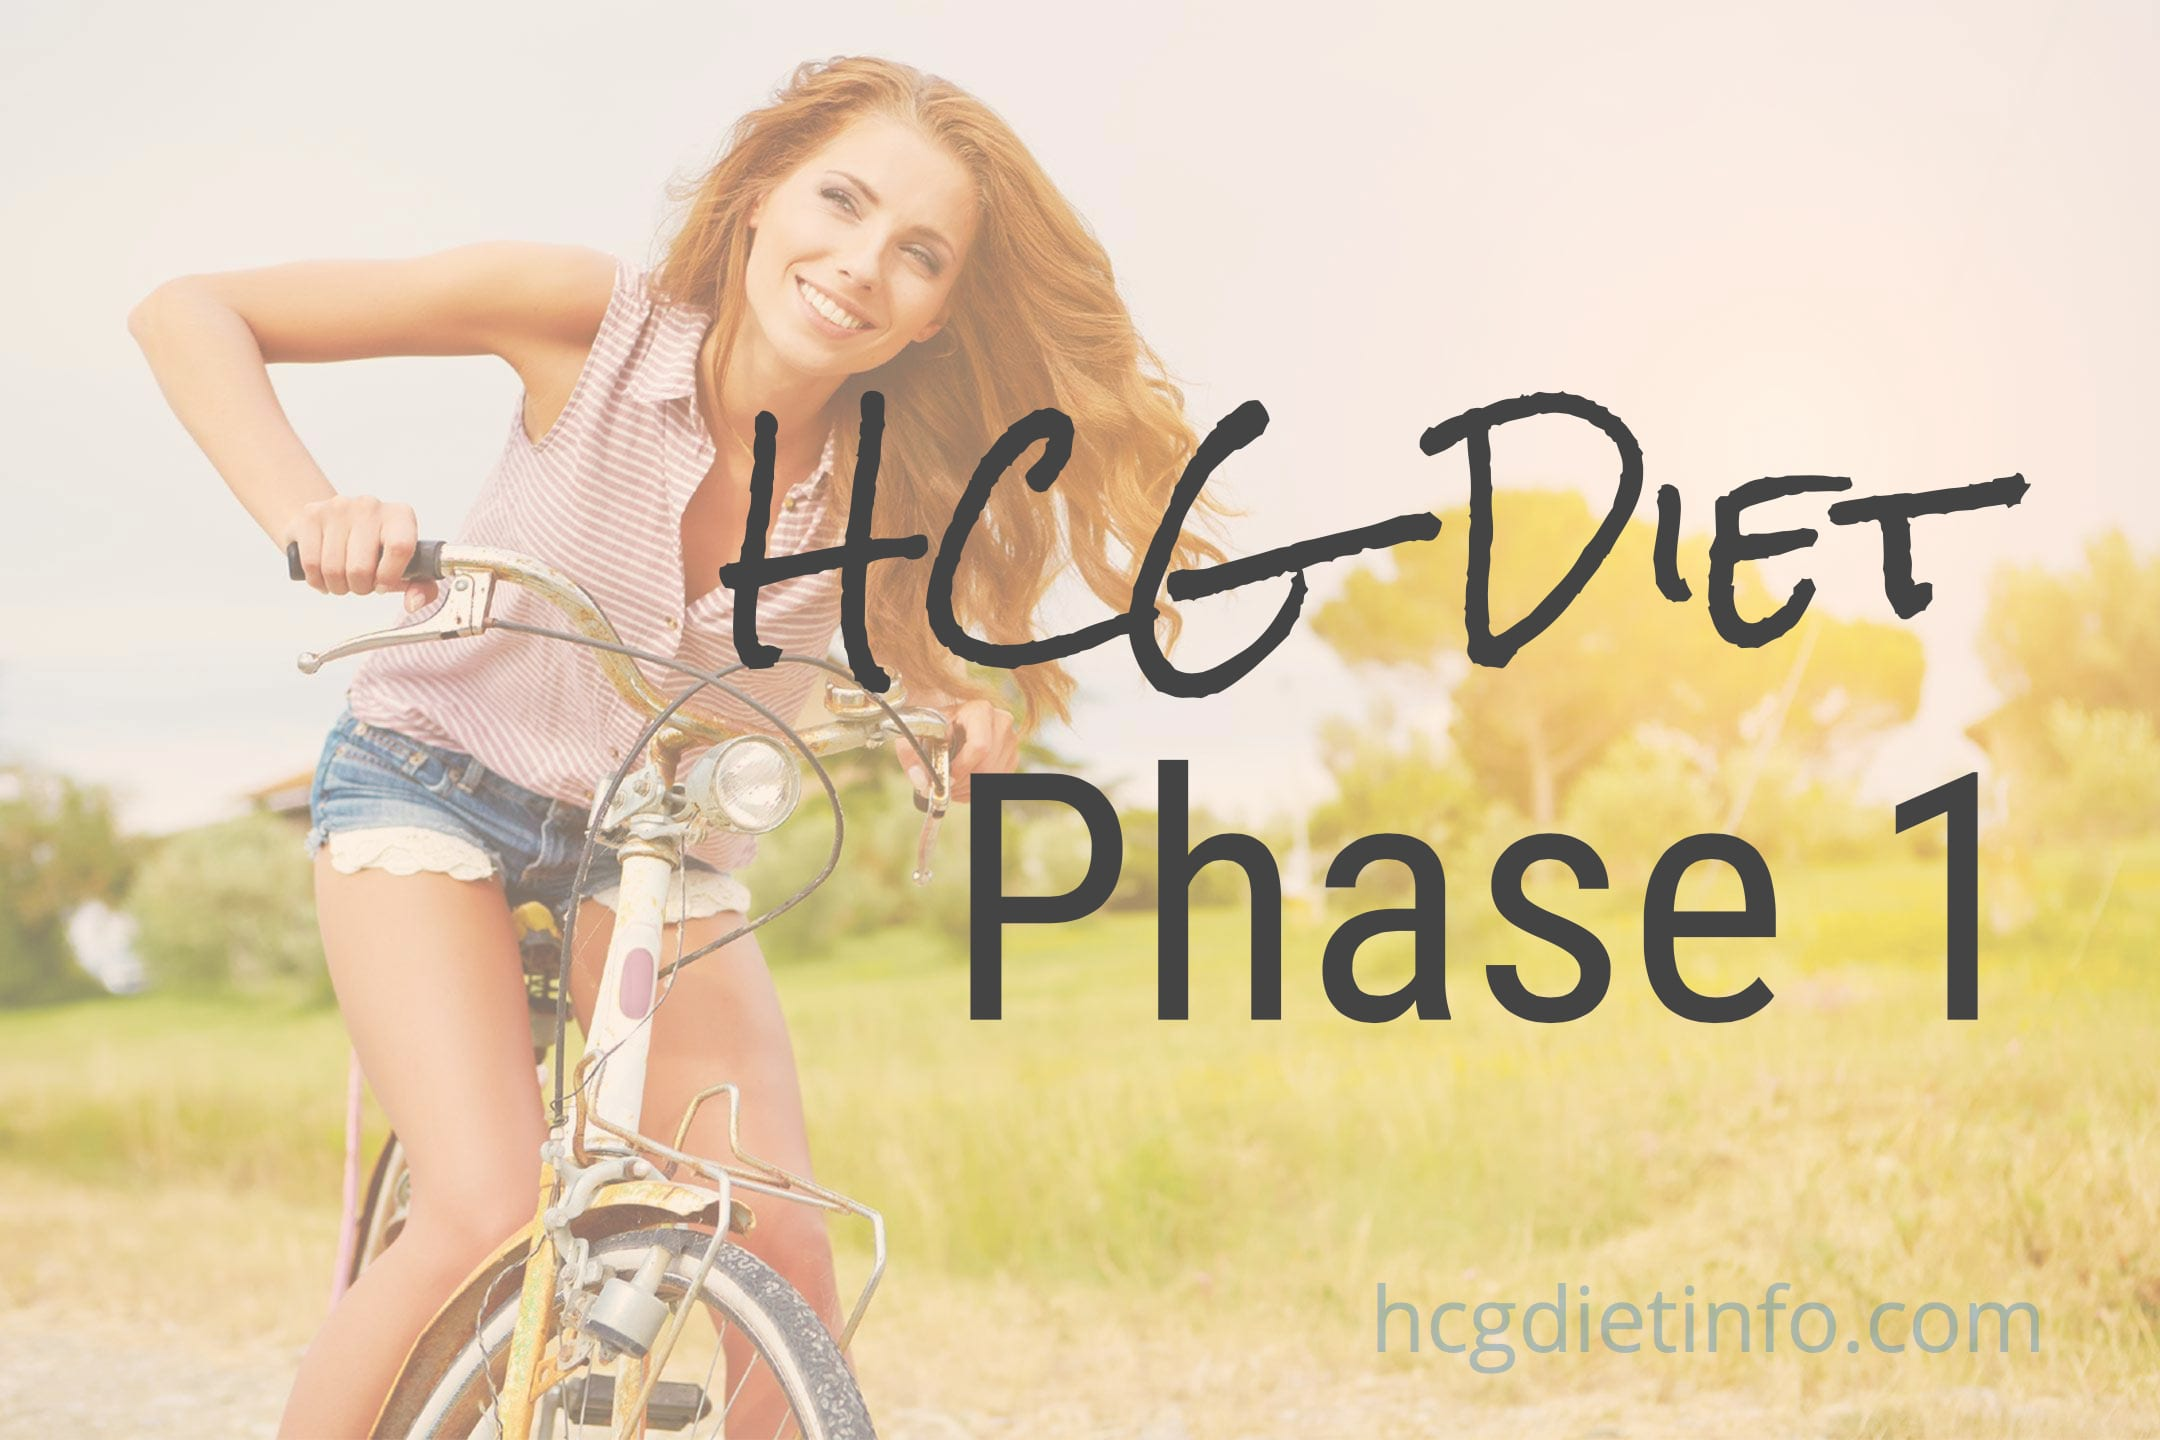 HCG Diet Phase 1 Loading Phase